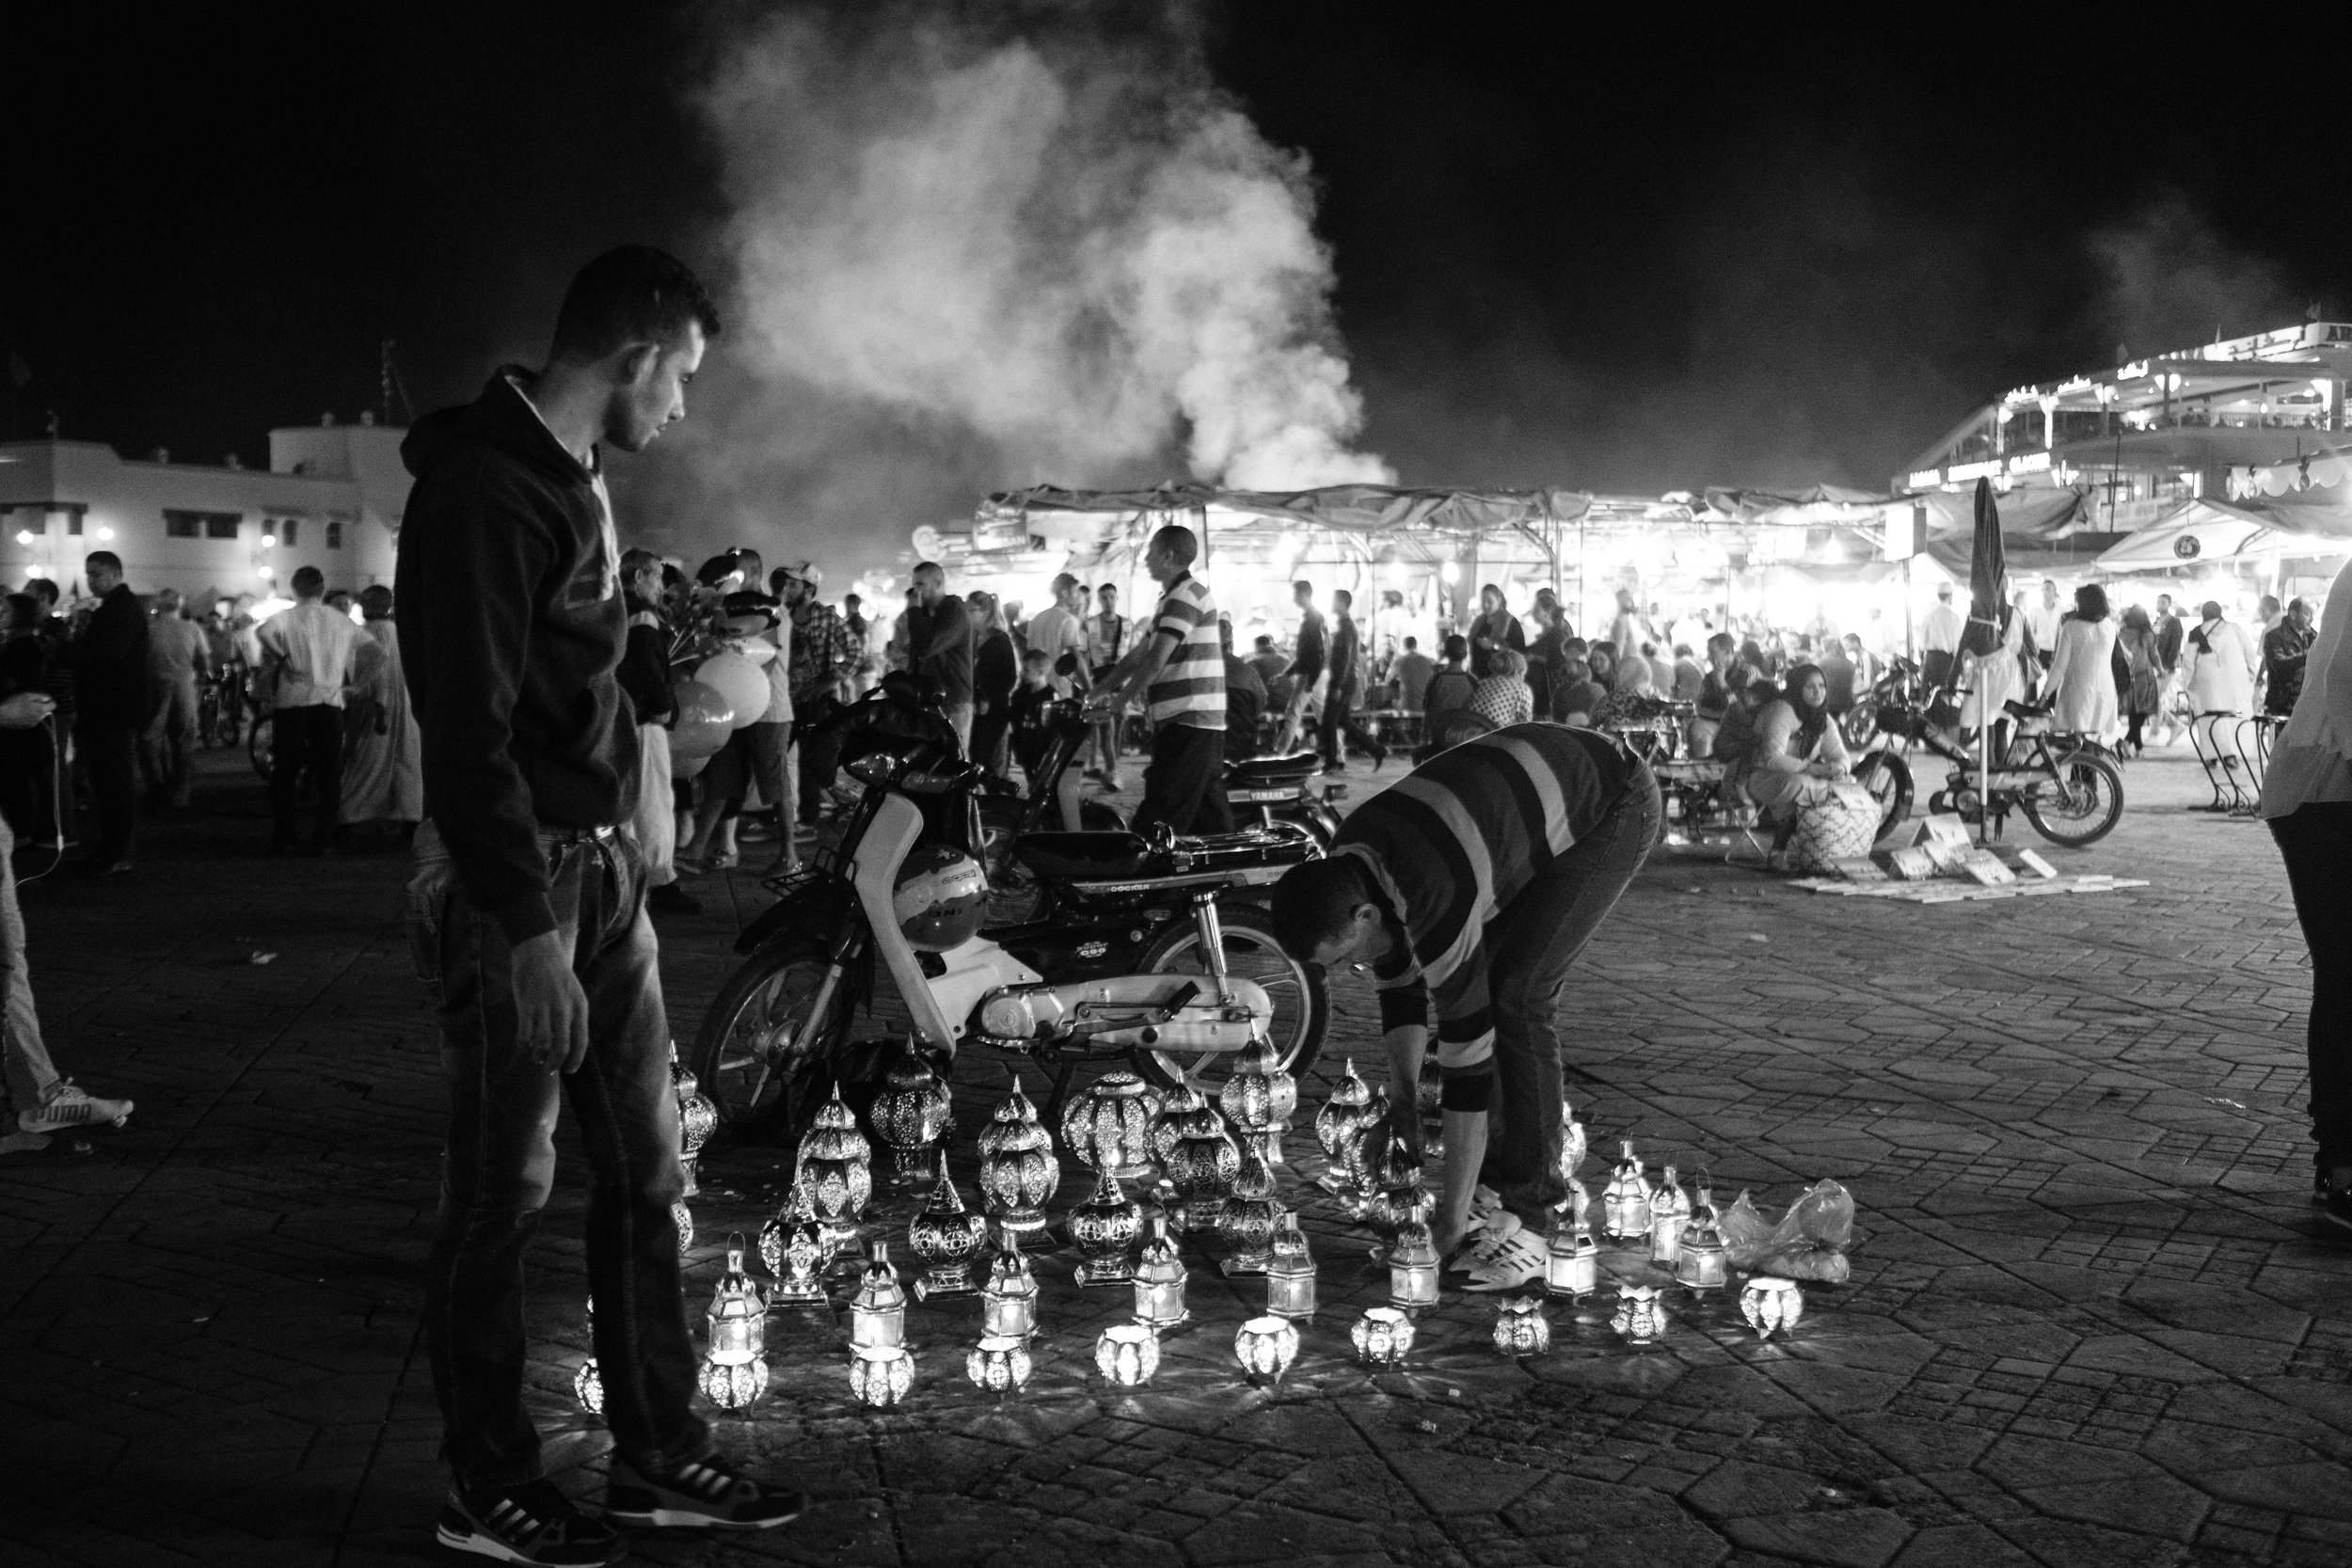 Night market at Jemaa el-Fna Square in the Medina District of Marrakech Morocco